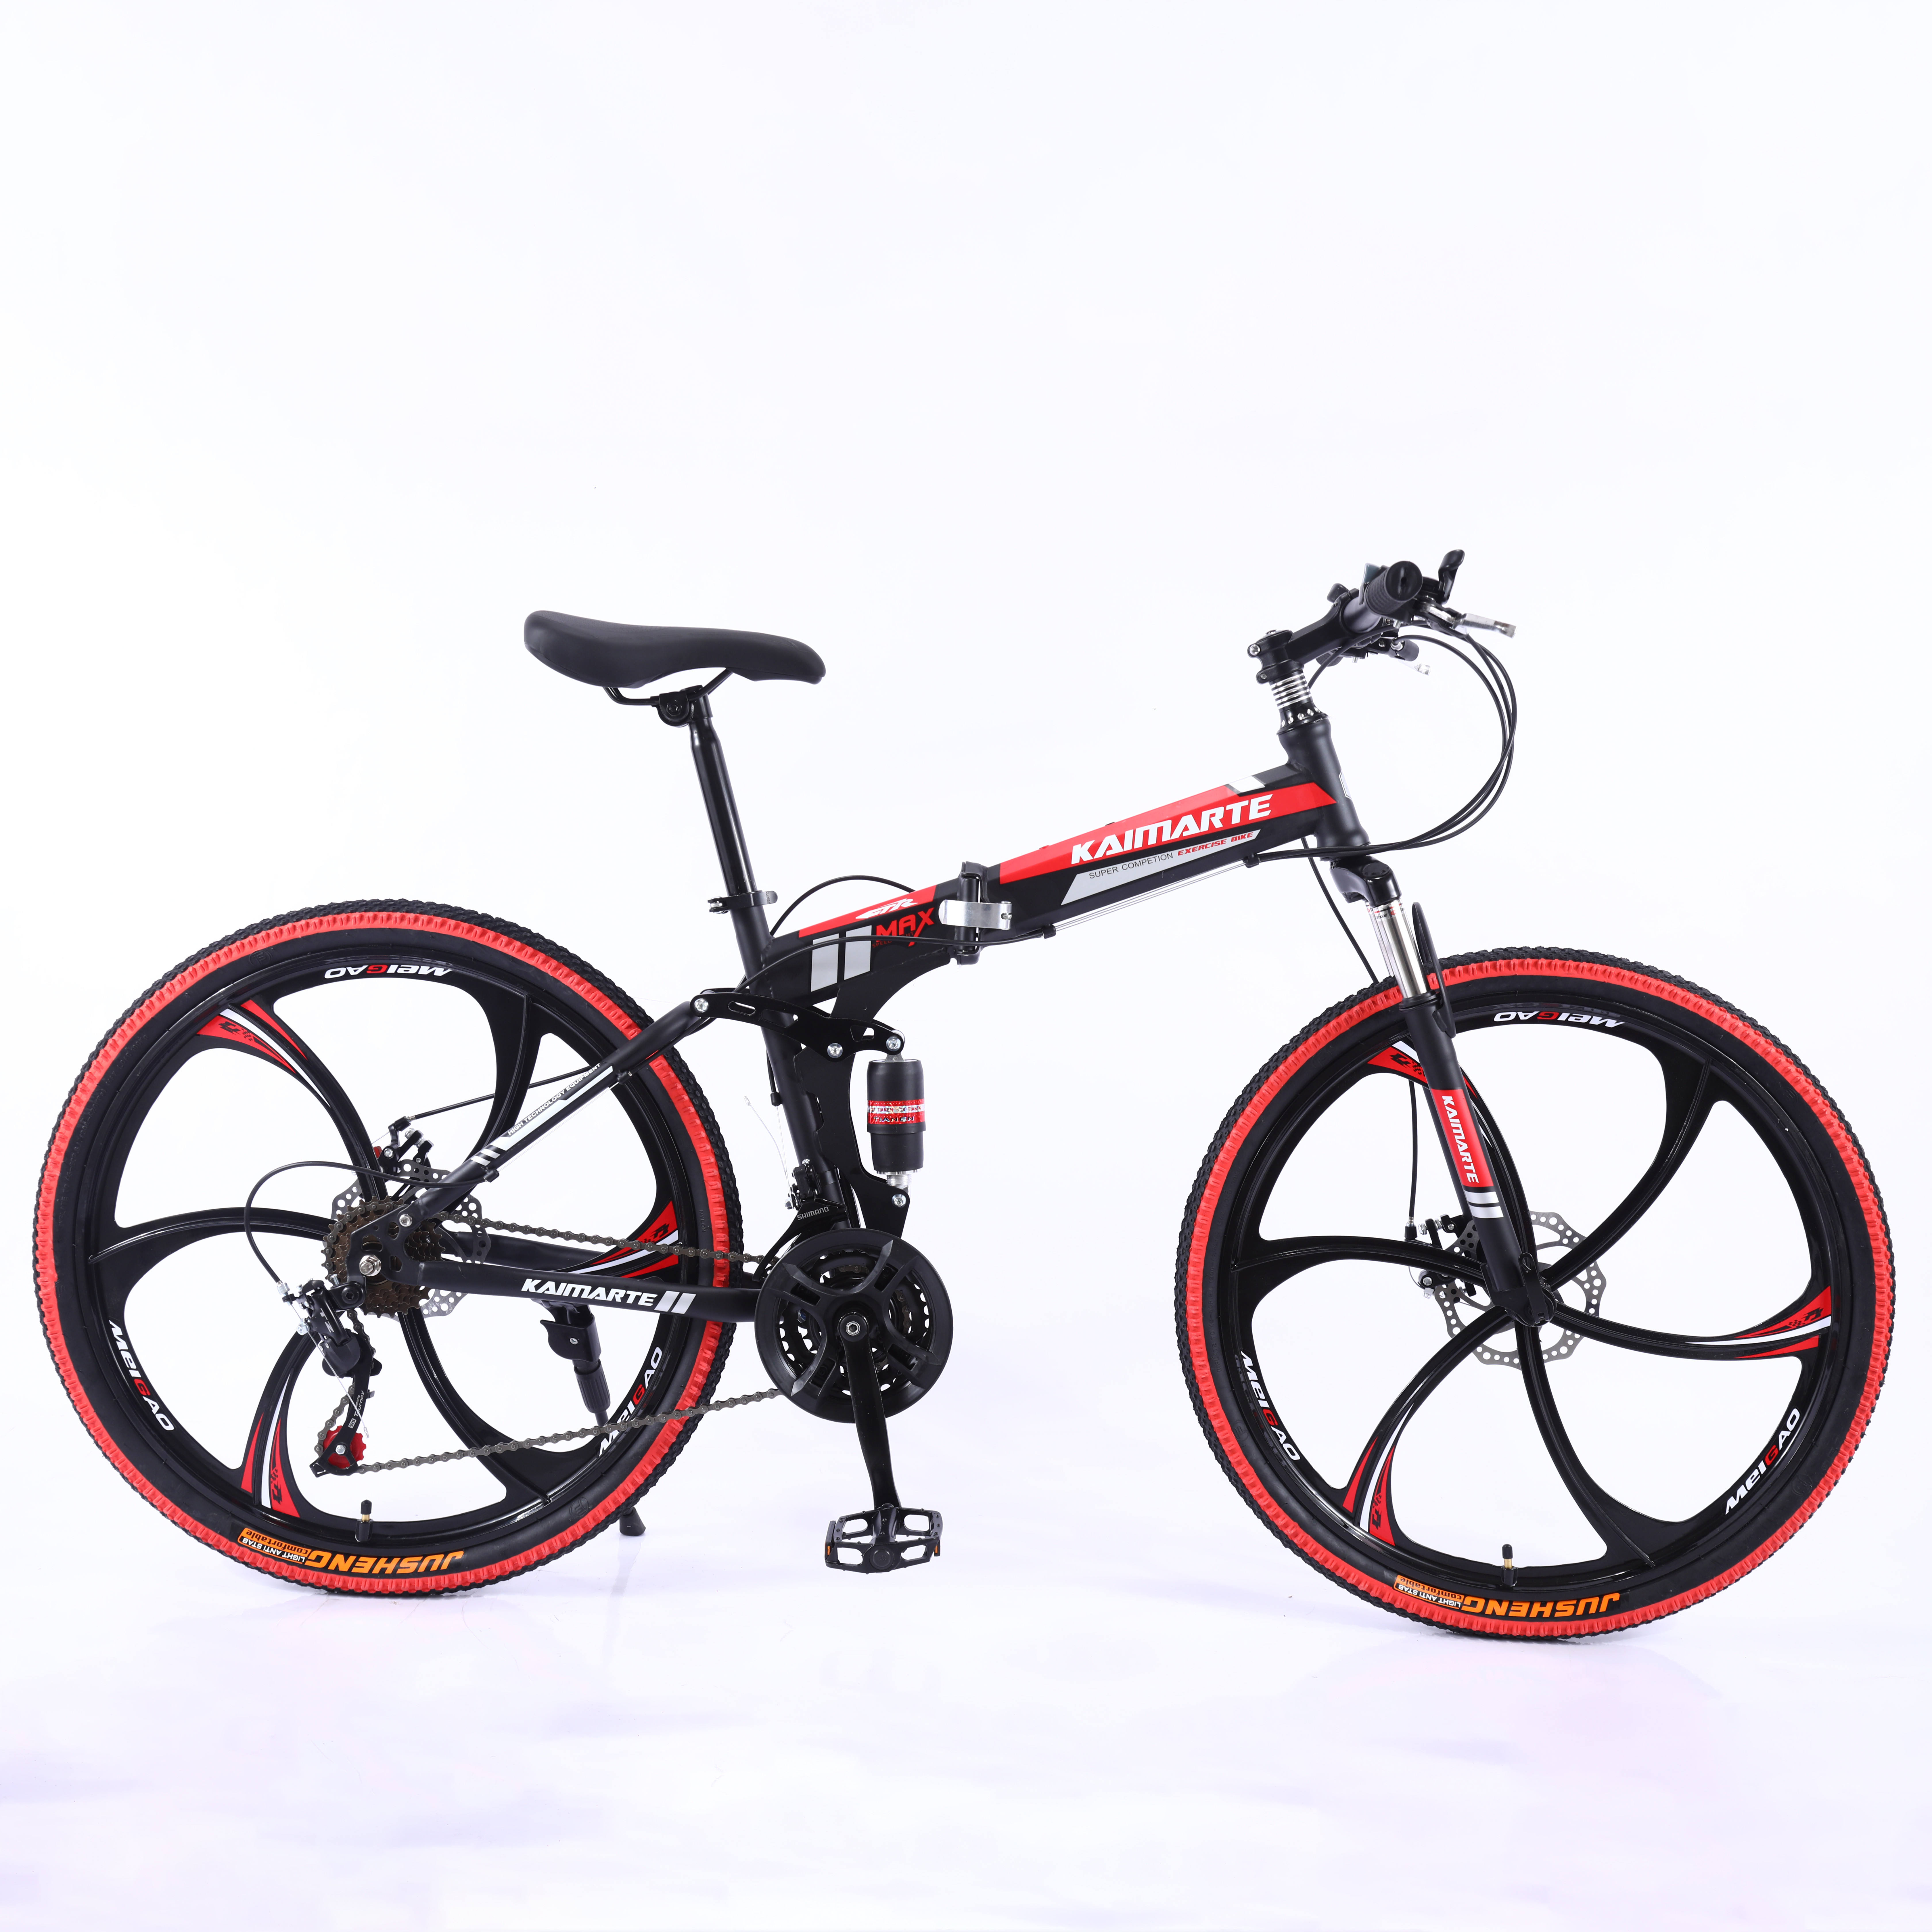 Durable high quality bicycles made in china mountain bike carbon mountain 24 26 27.5 inch bicycle tires mountain bike